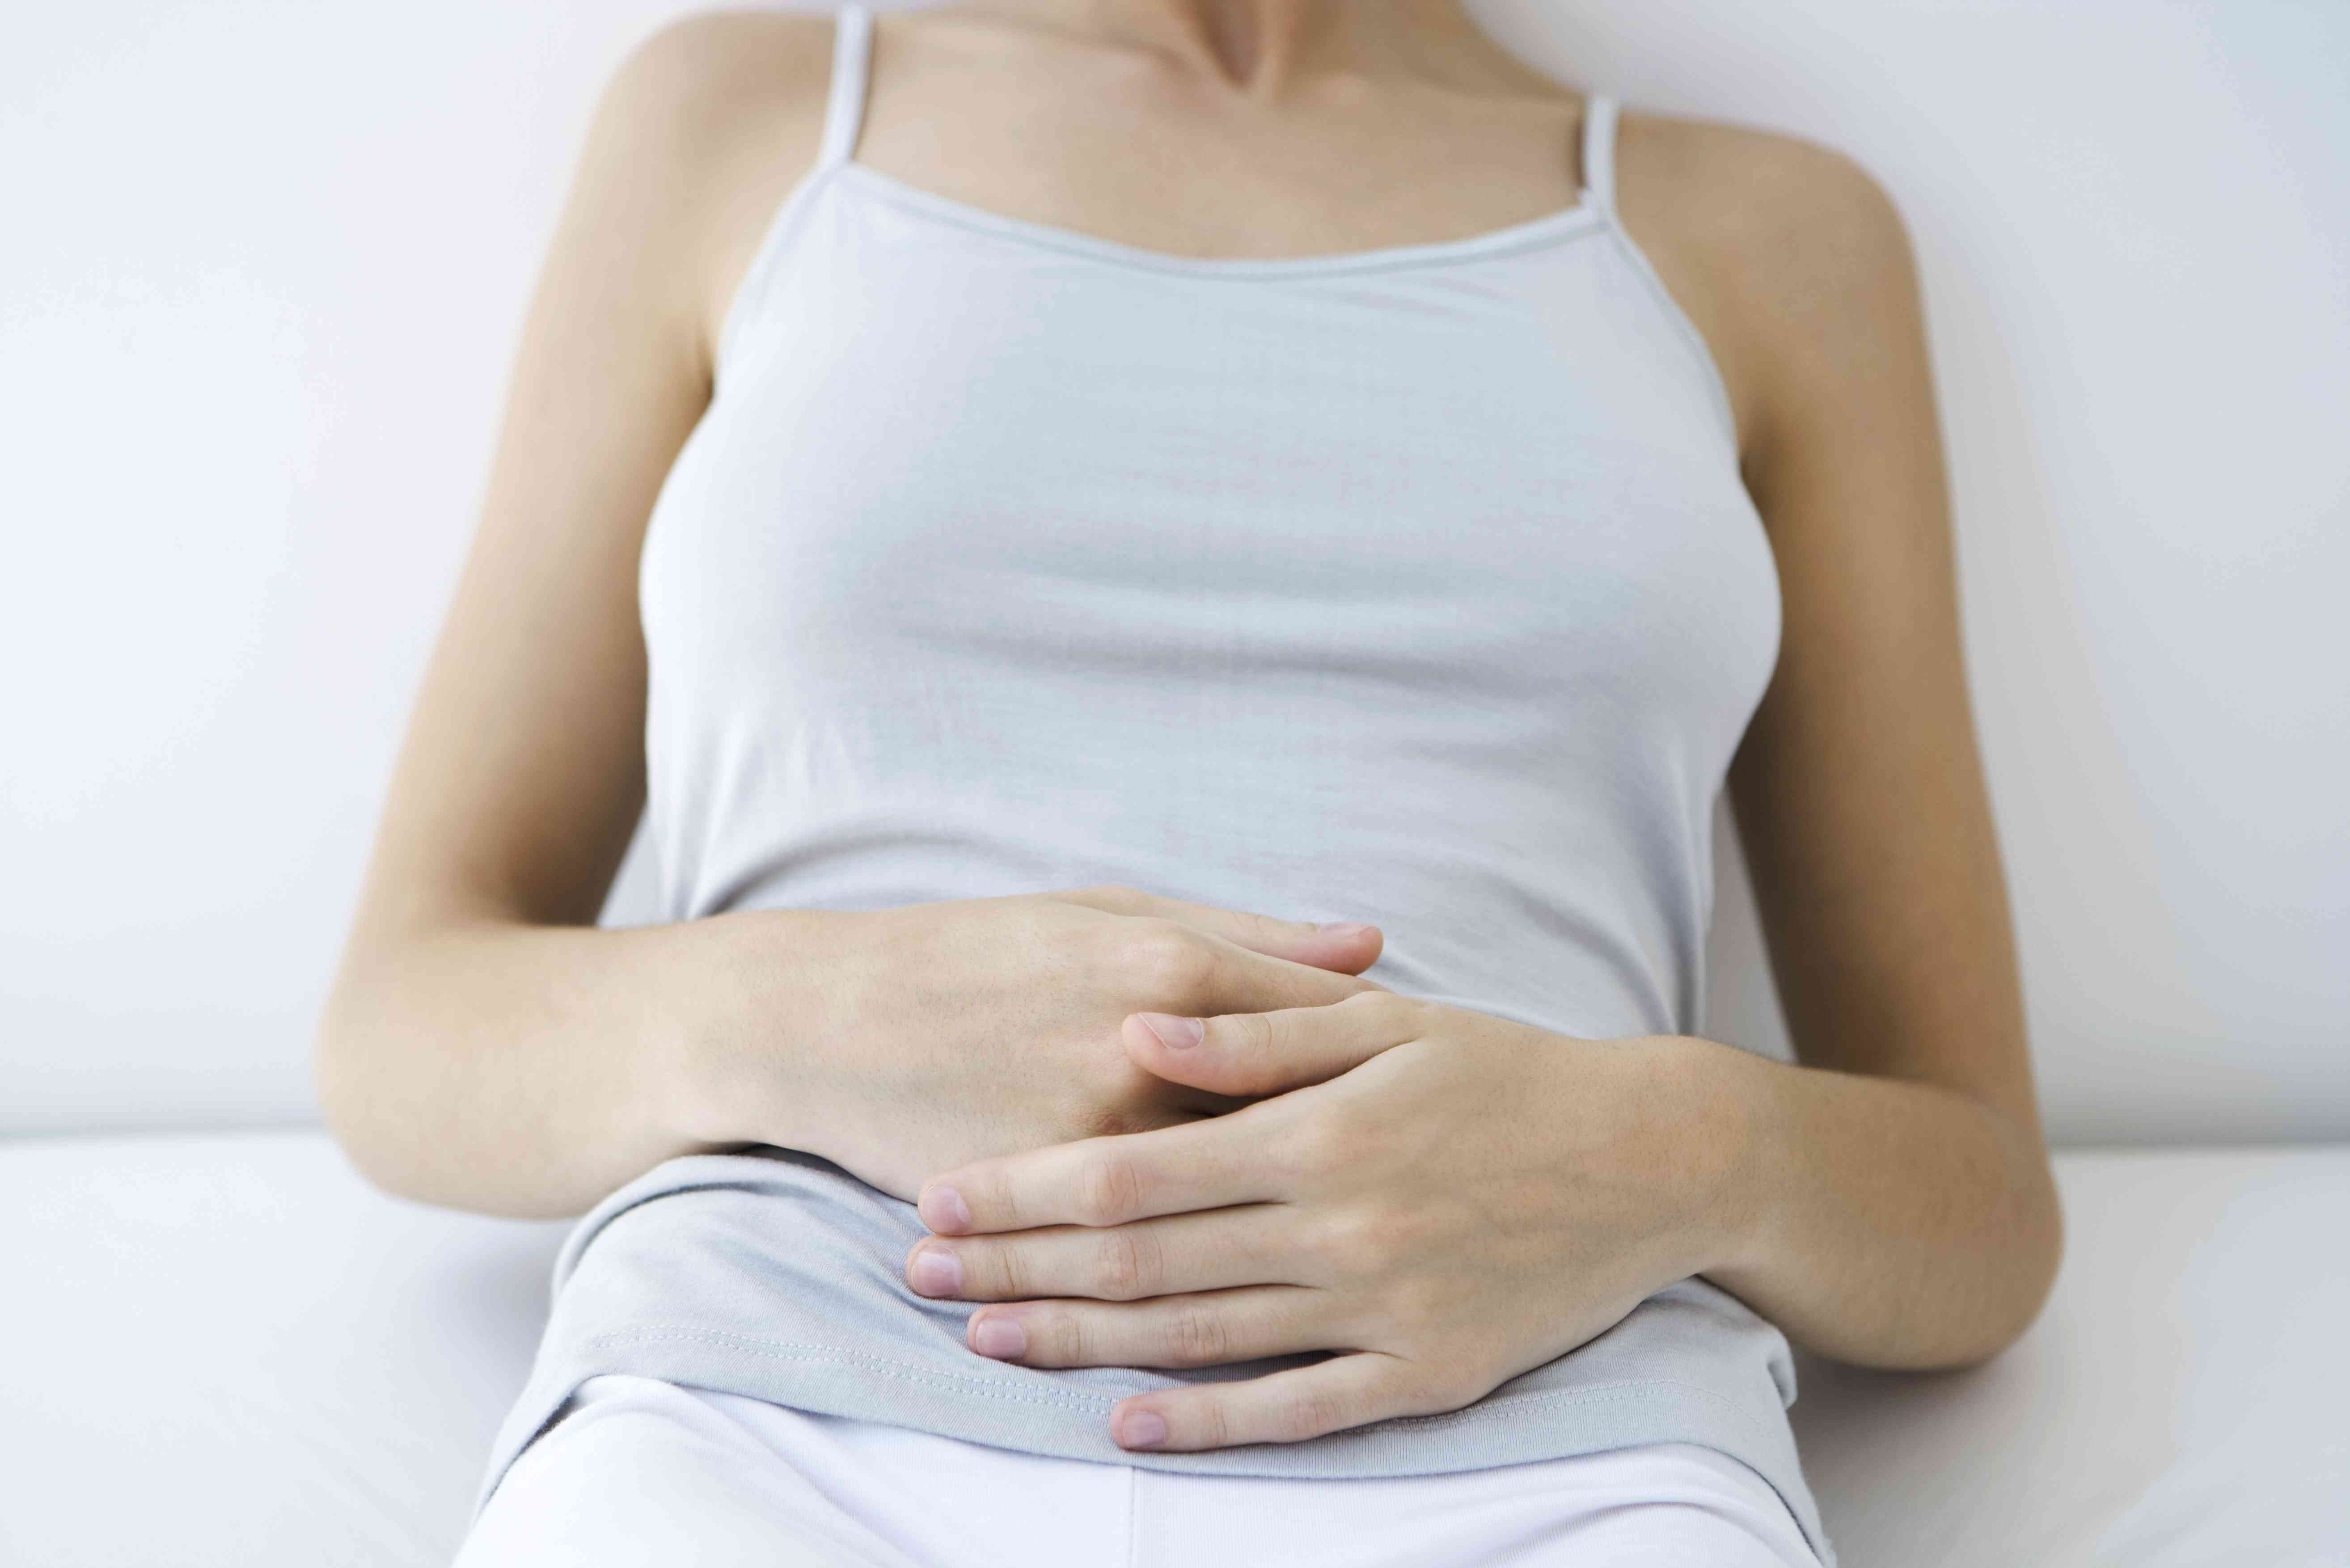 Woman holding stomach in discomfort